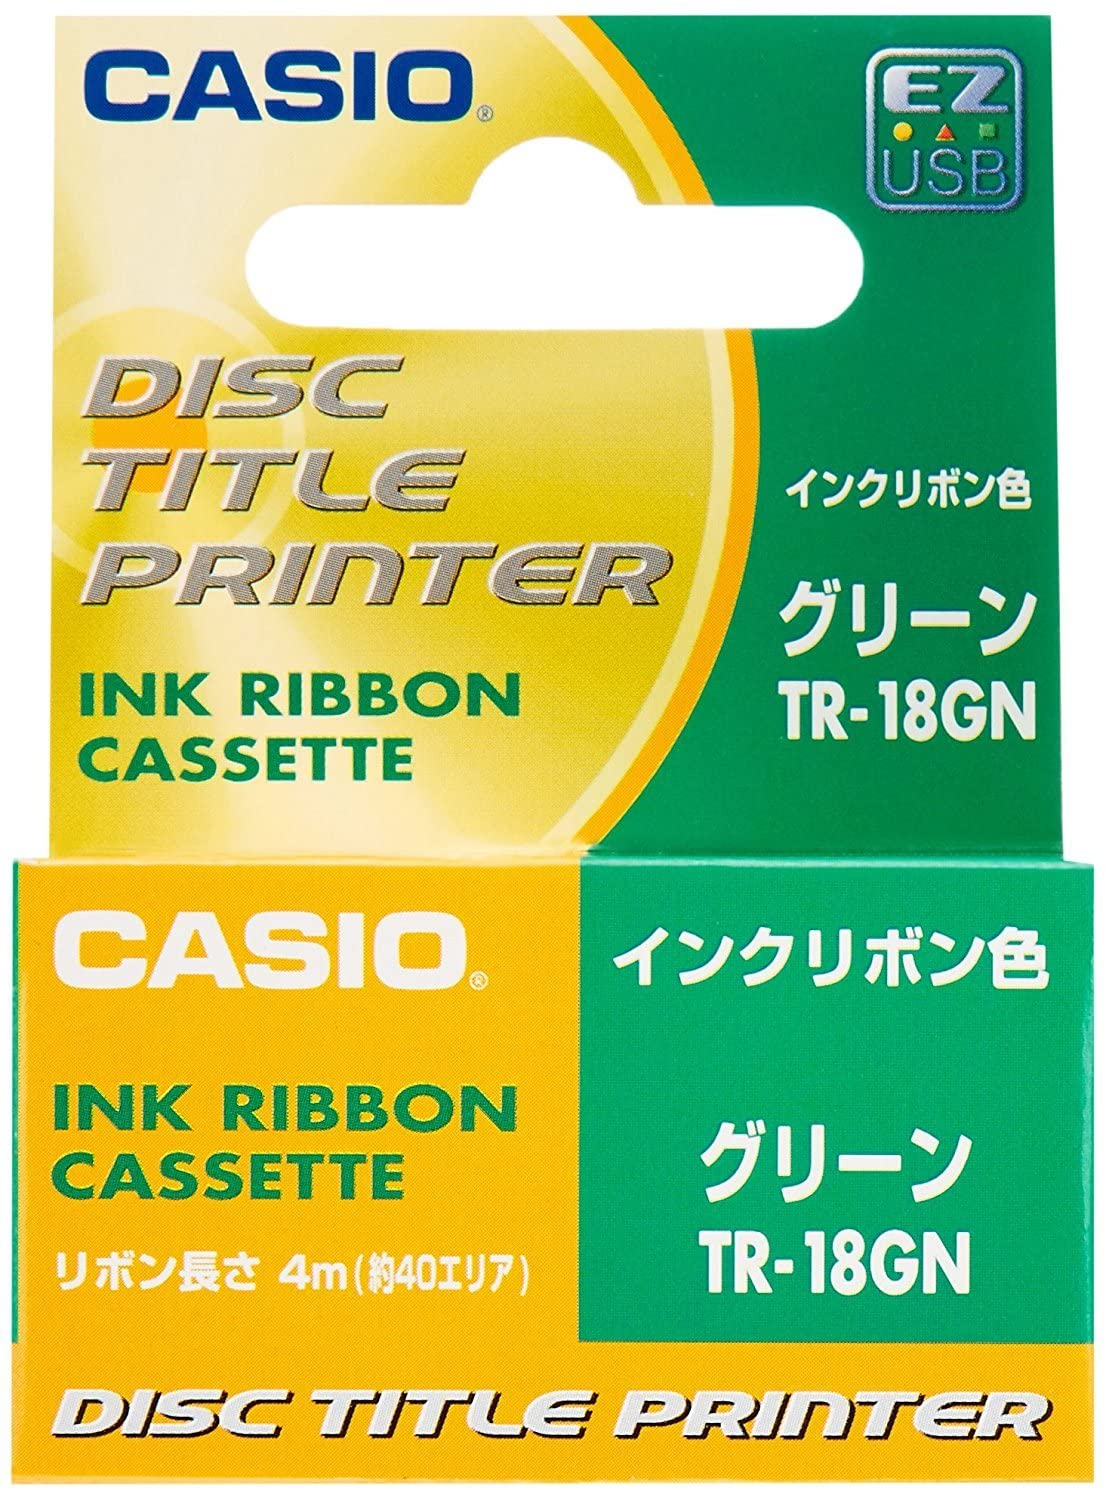 CASIO Casio DISC title printer for printing ink ribbon cassette TR-18SR Silver (japan import)